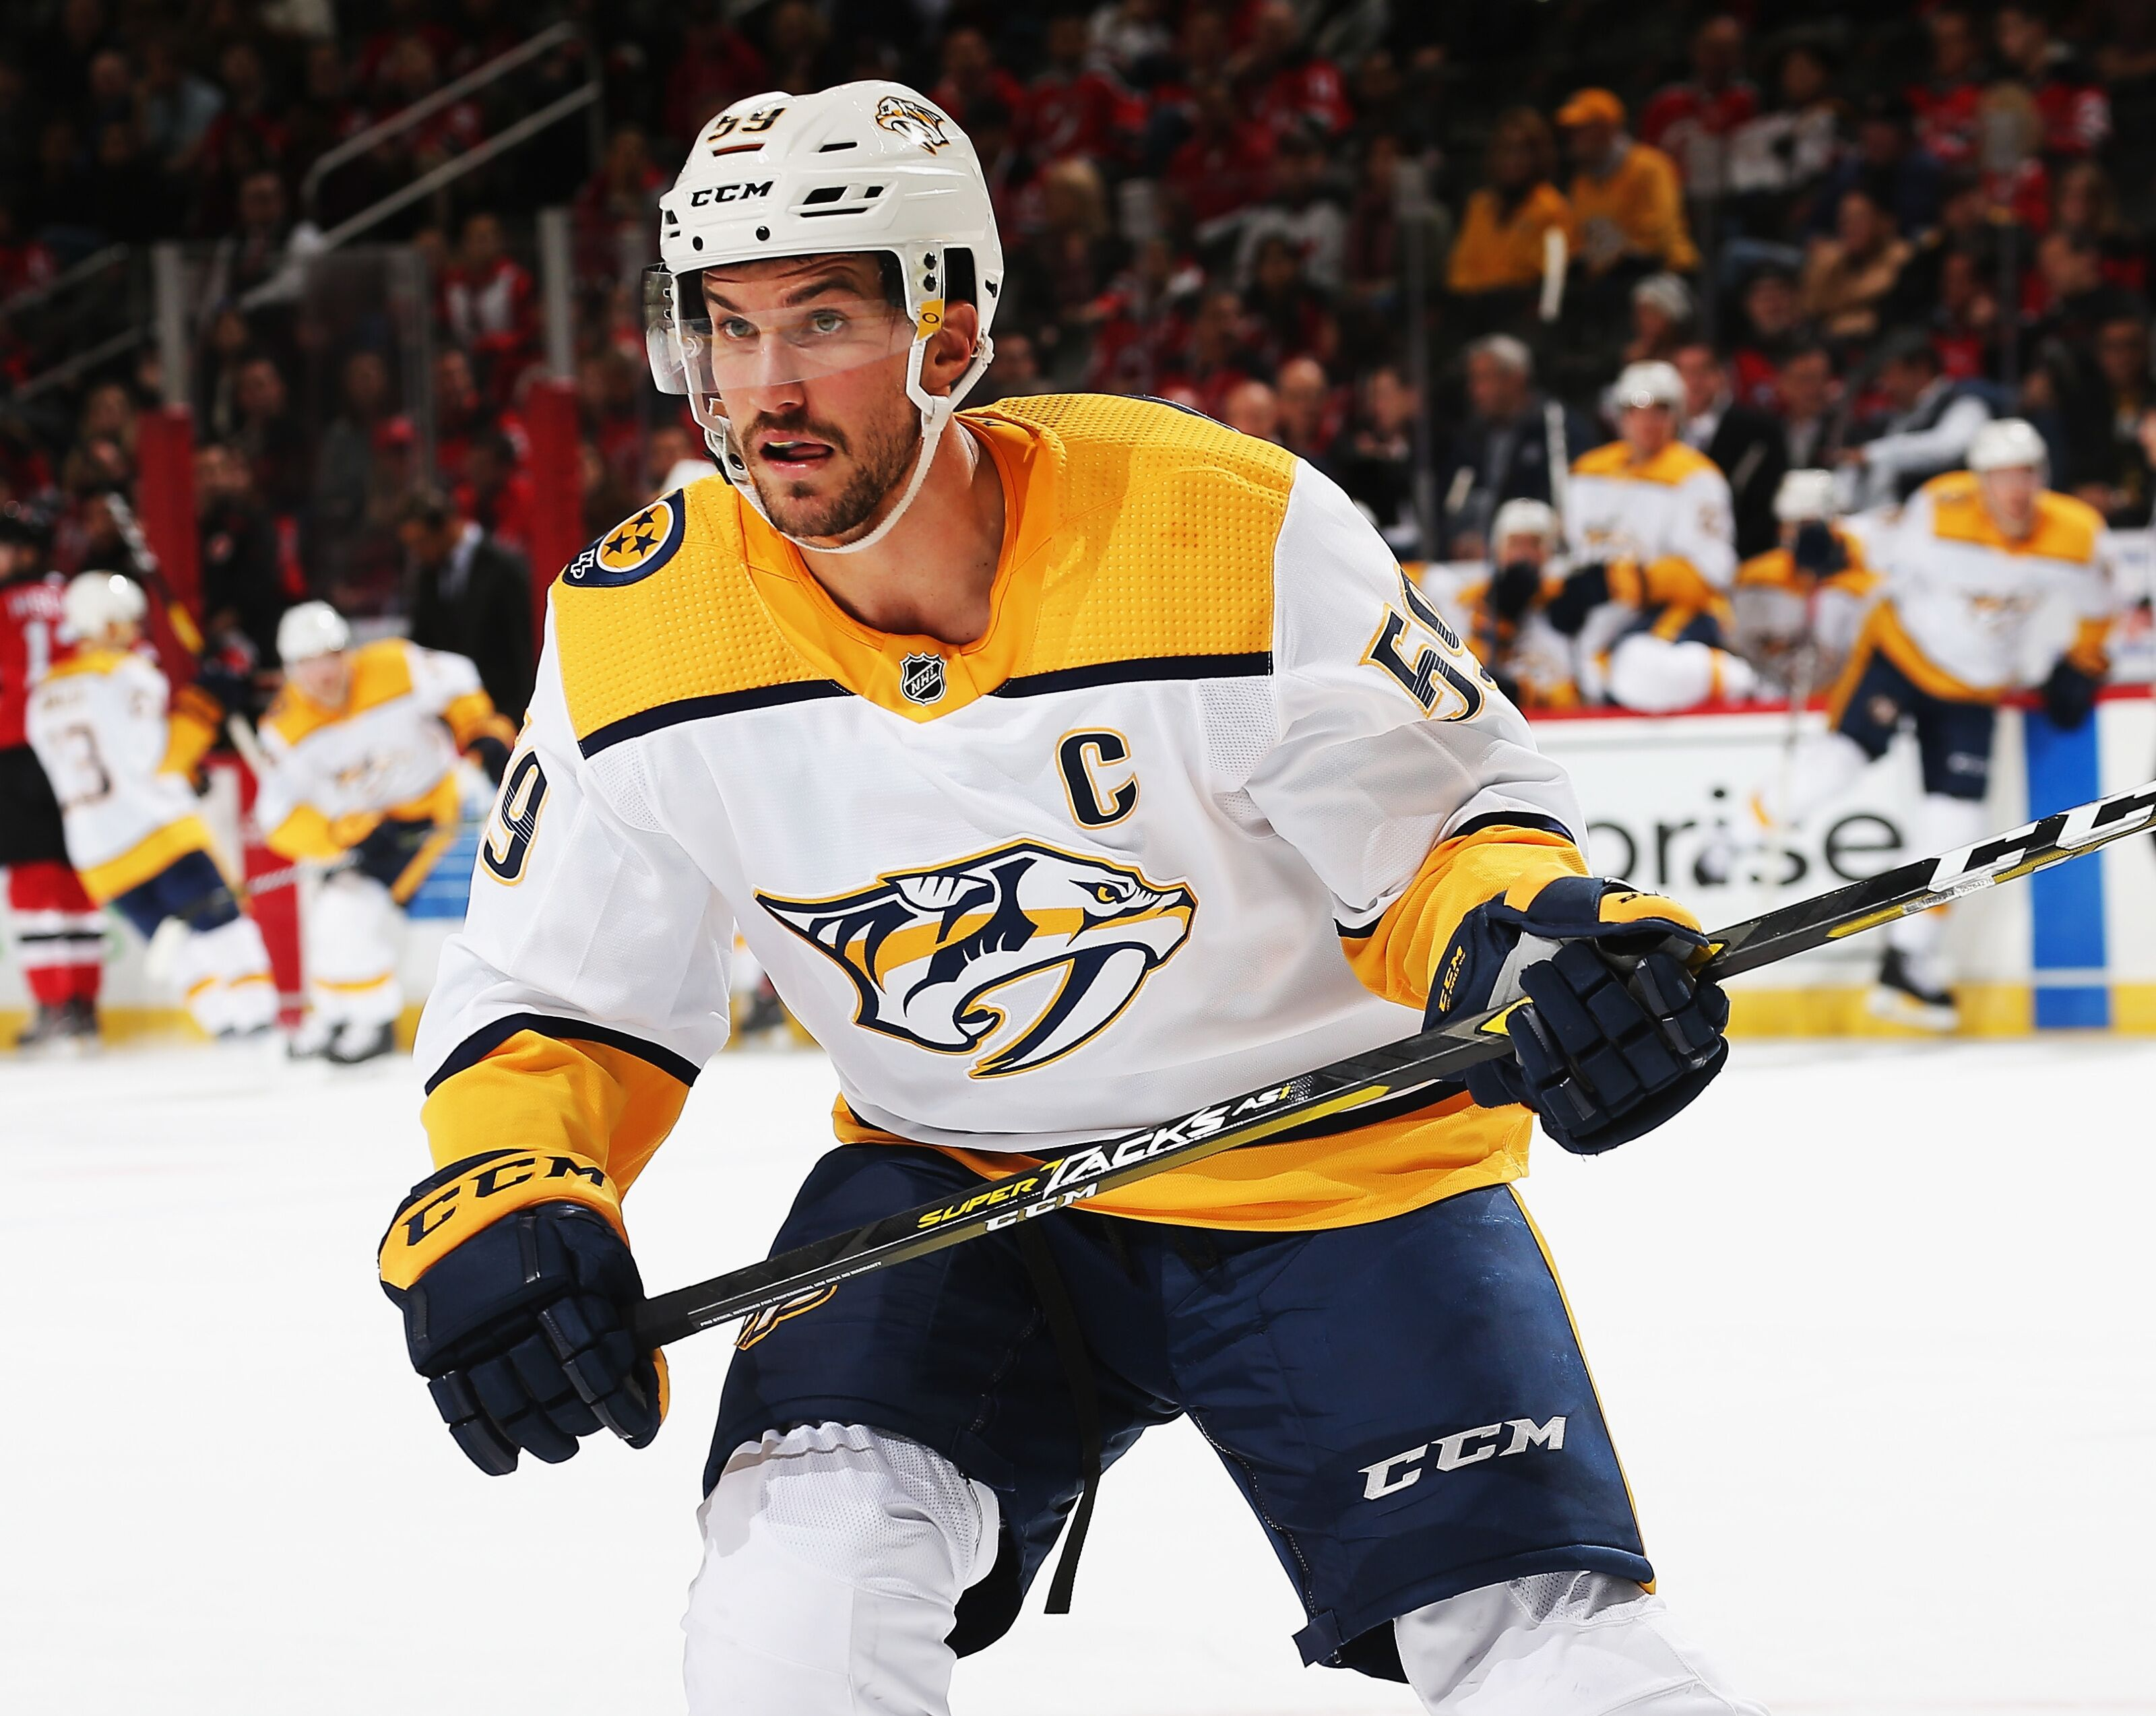 Nashville Predators: Roman Josi Looms as Top Offseason Priority